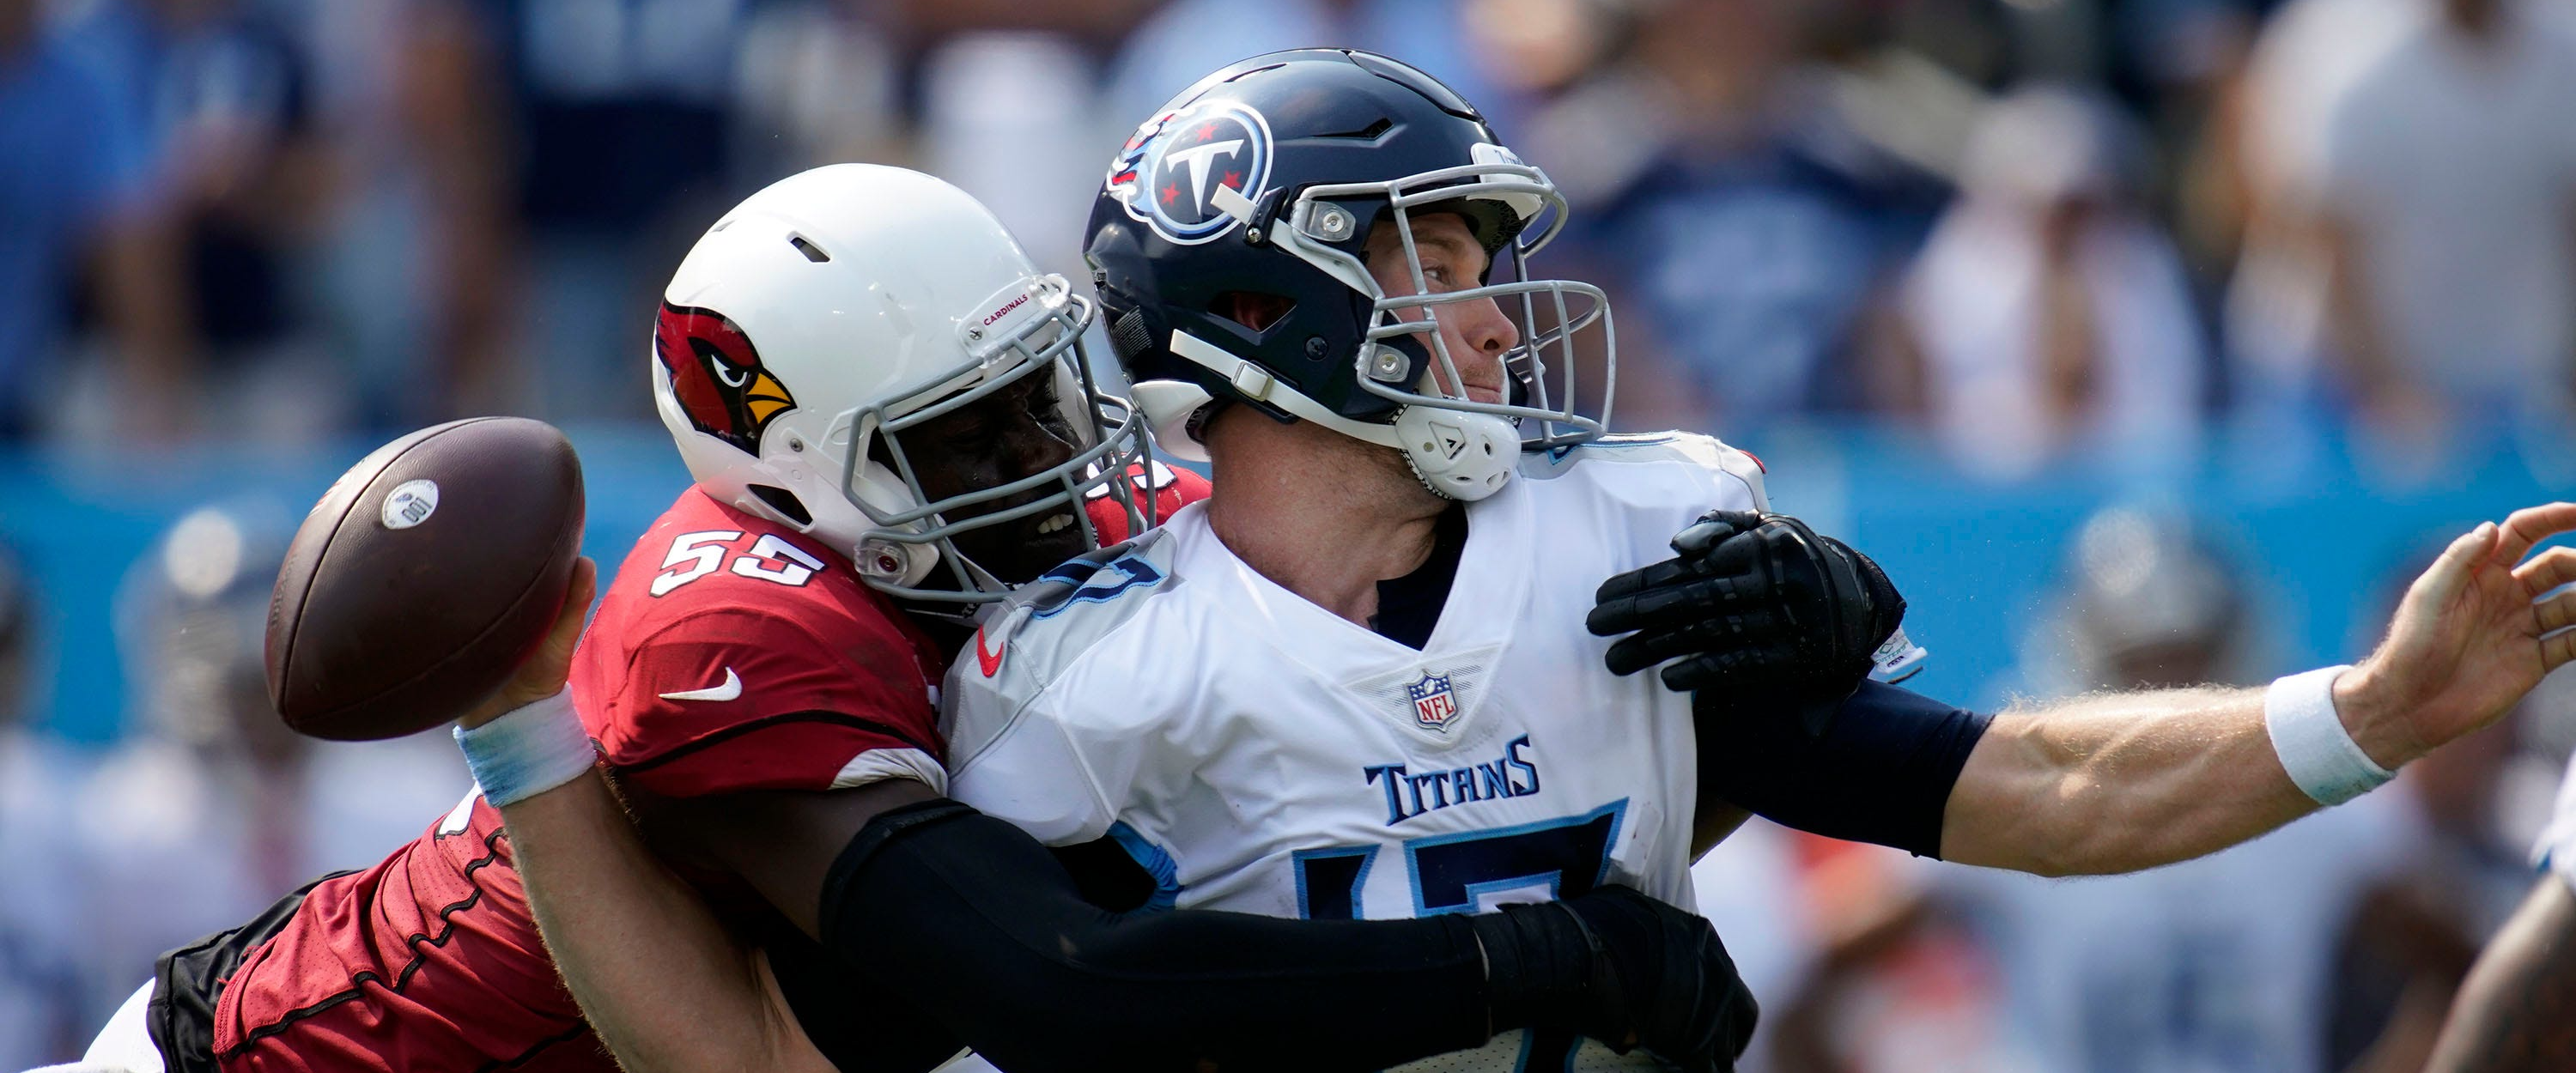 Titans: 3 takeaways from the embarrassing loss to the Cardinals